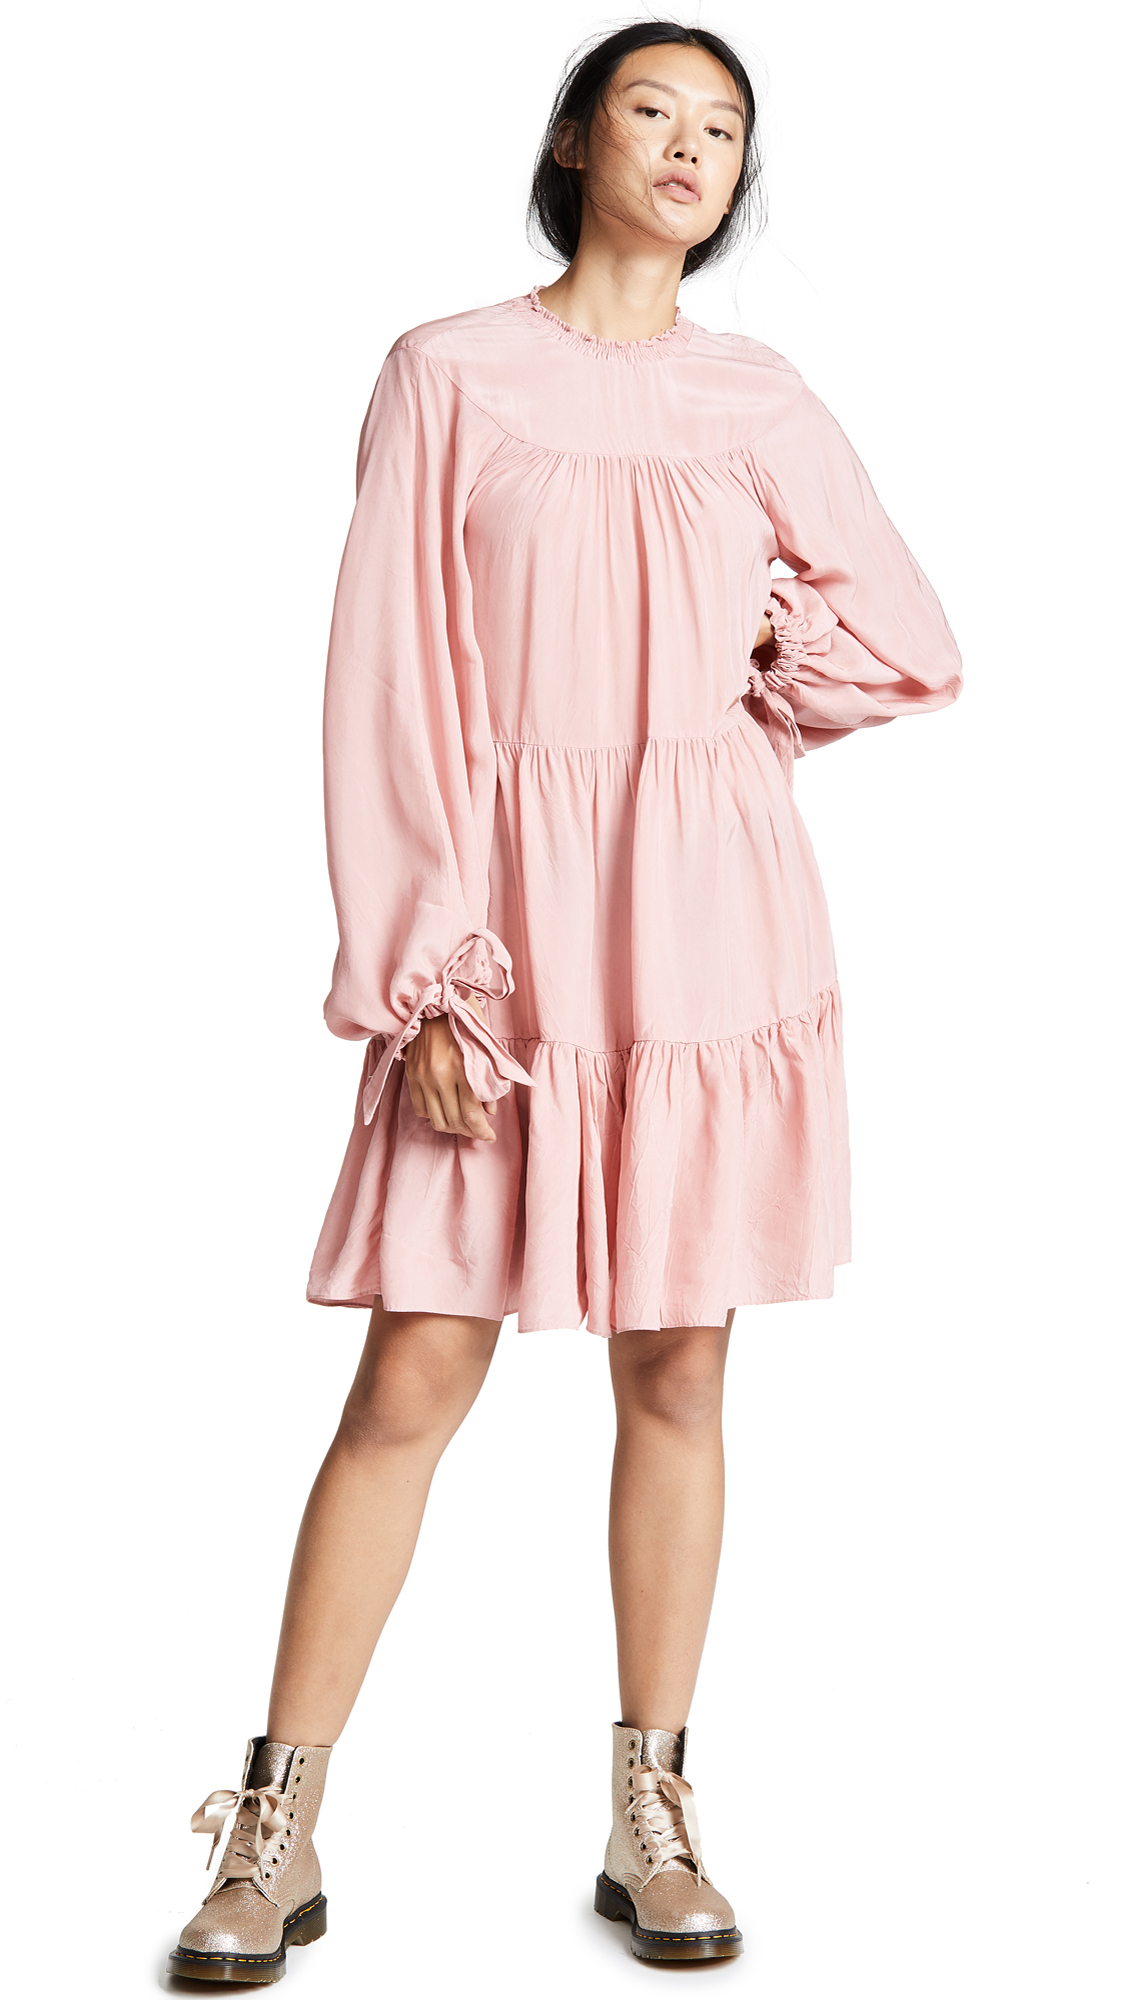 3.1 Phillip Lim LS Short Gathered Dress - Dusty Pink